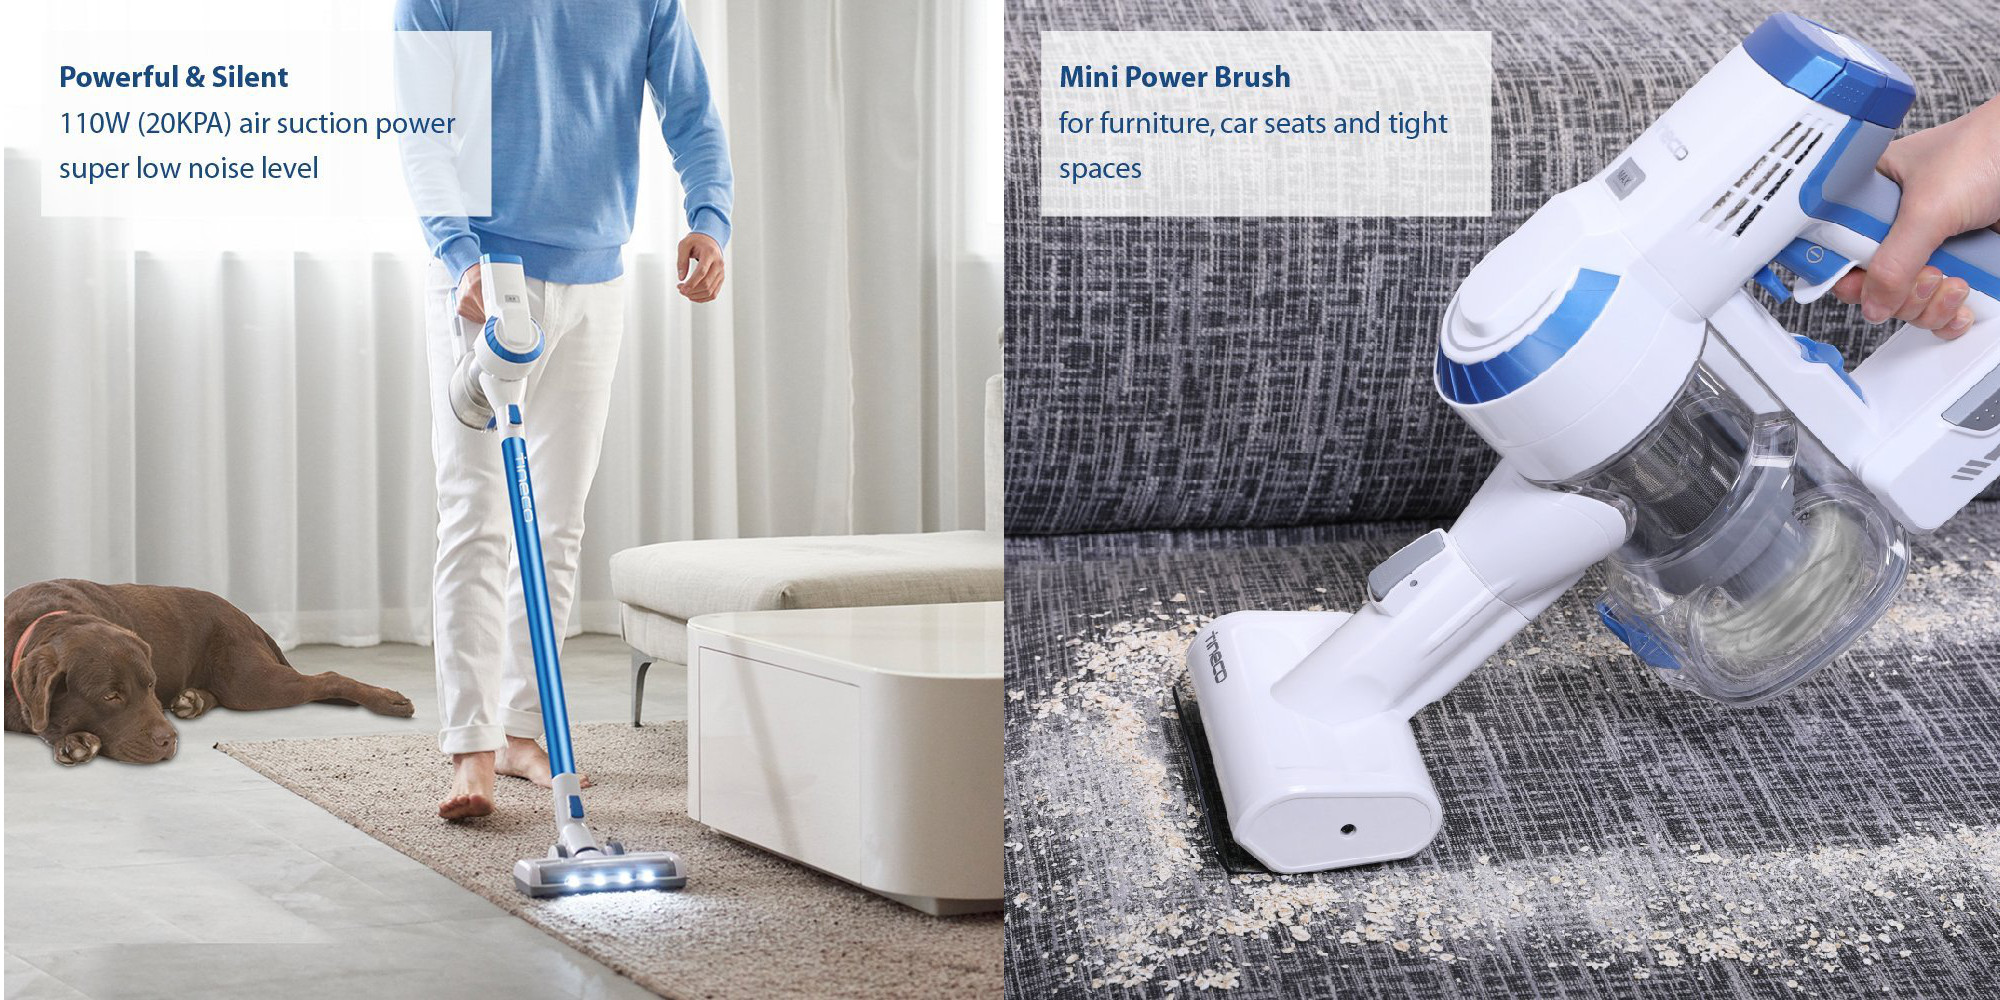 Forget wired vacuums, this model has 25-minutes of battery-powered cleaning: $130 ($70 off)